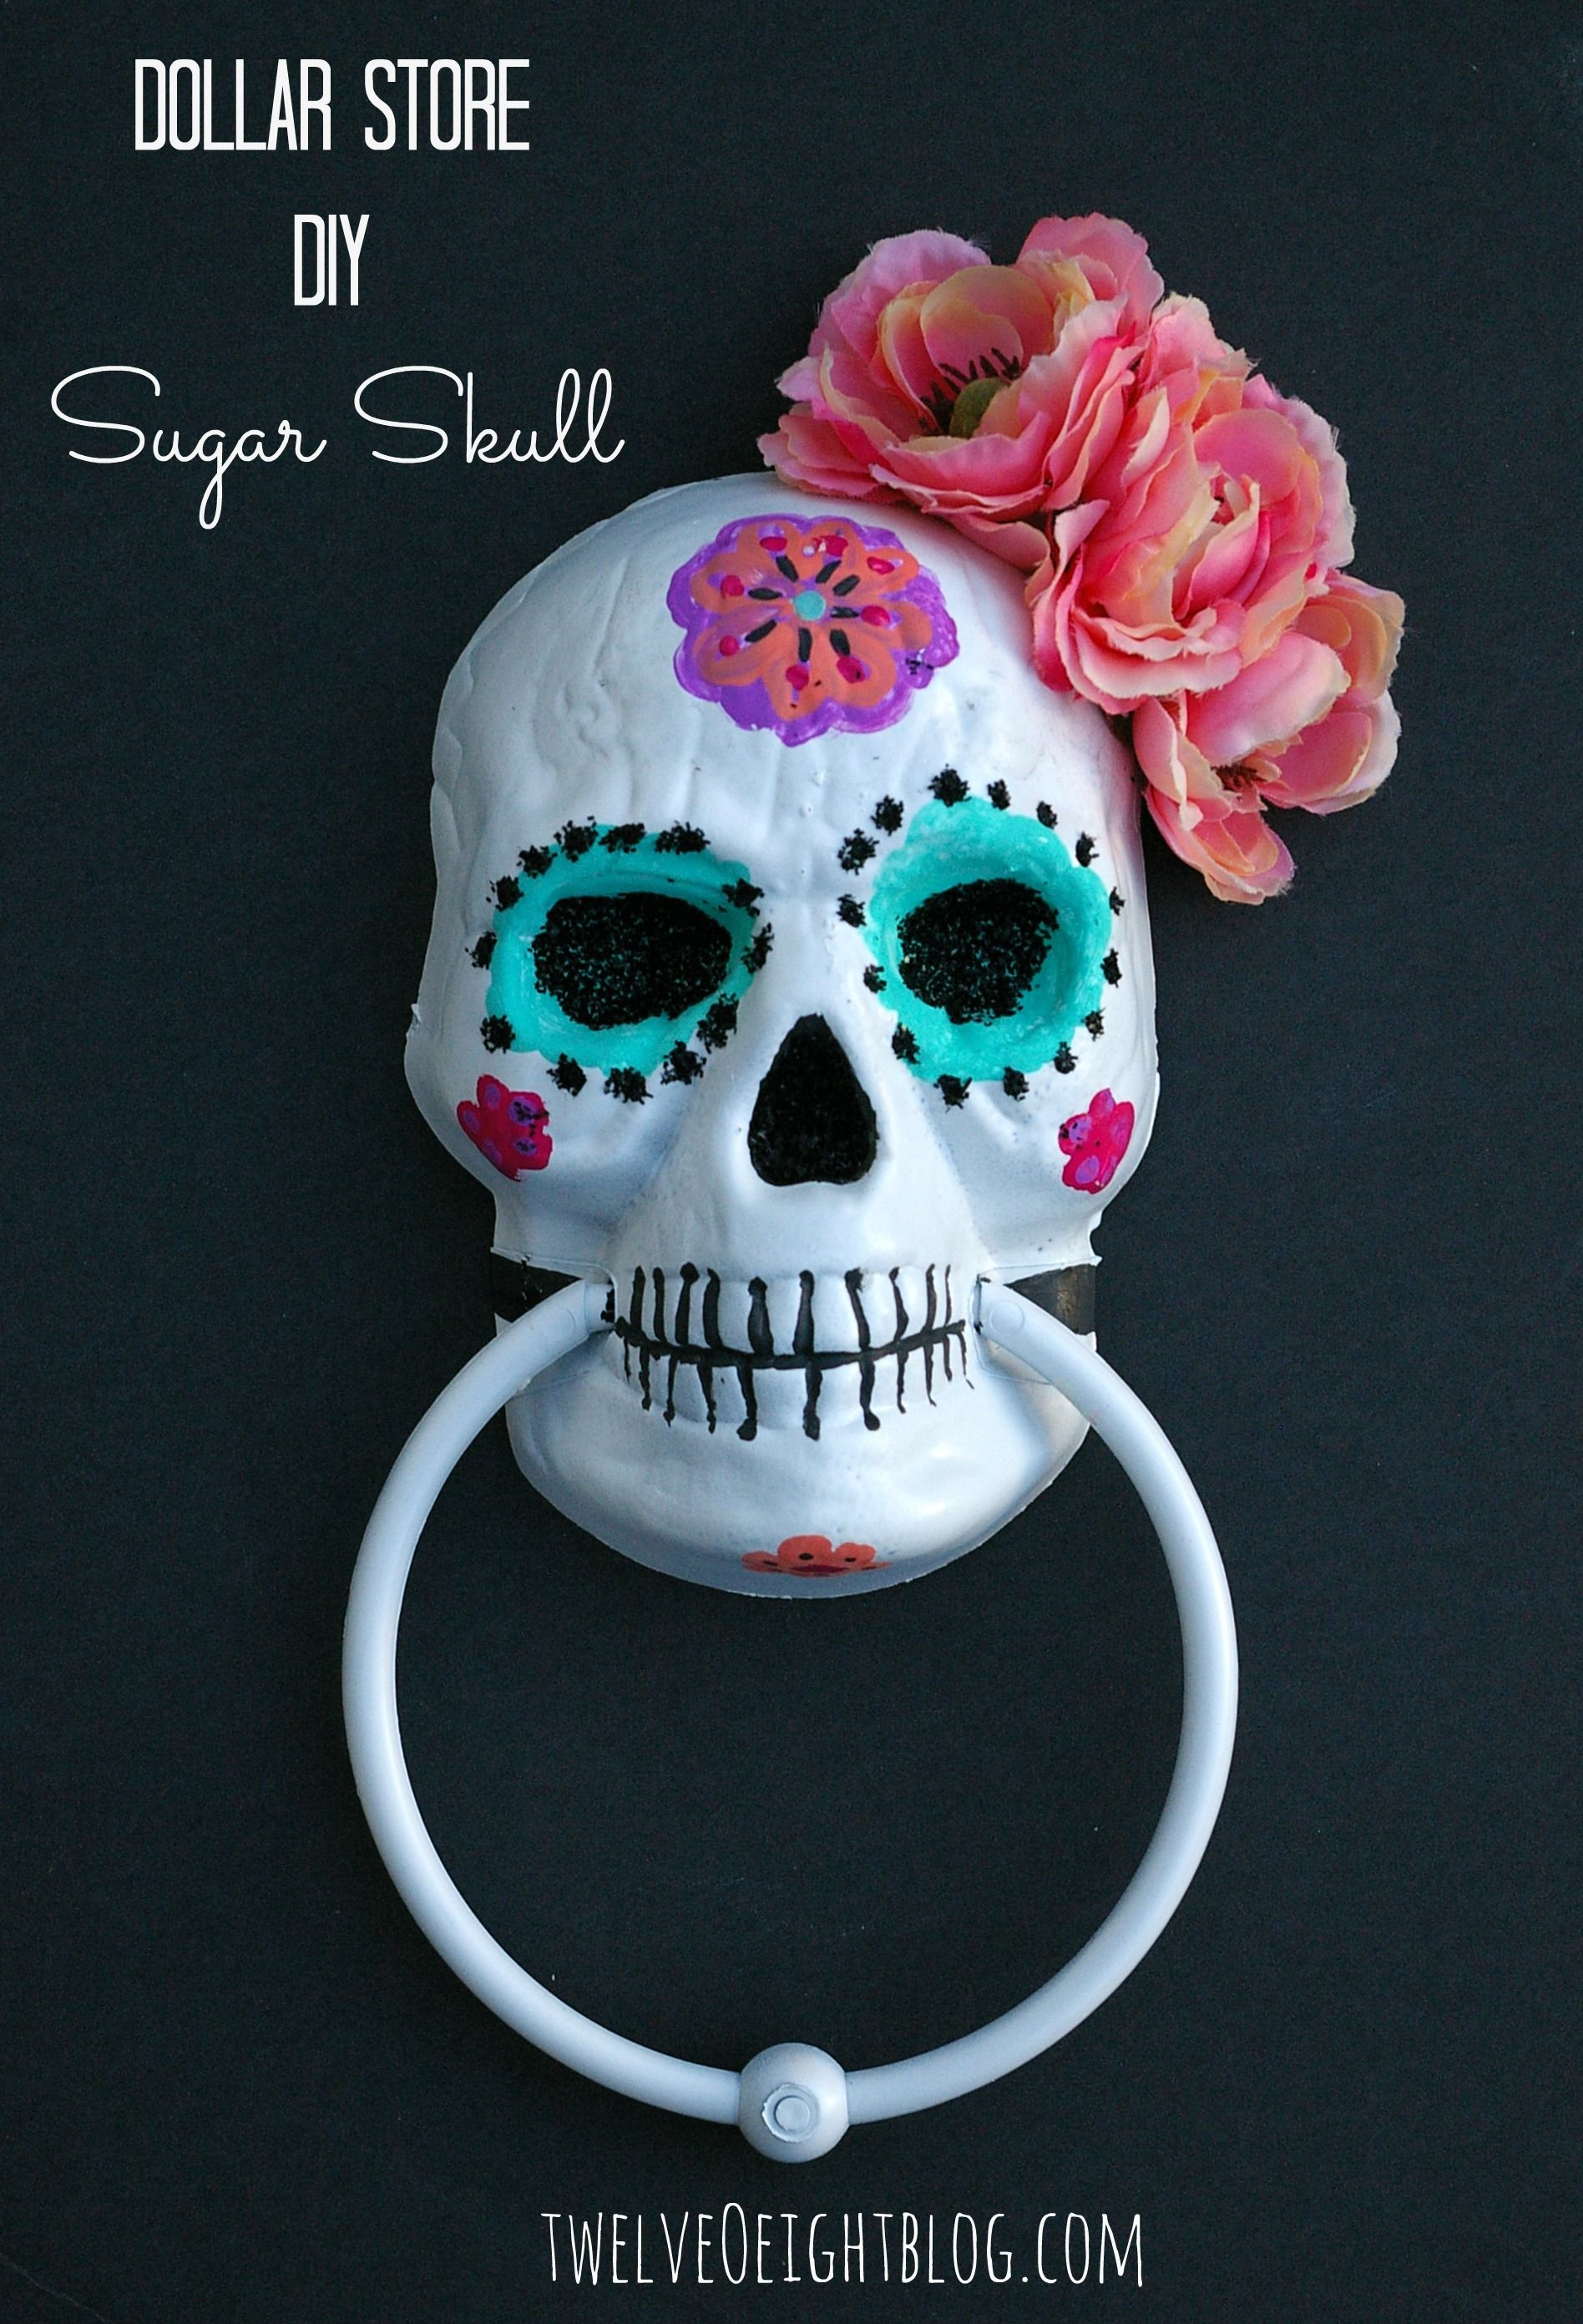 Super DIY Dollar Store Painted Sugar Skull: I bought one of these from  FX79